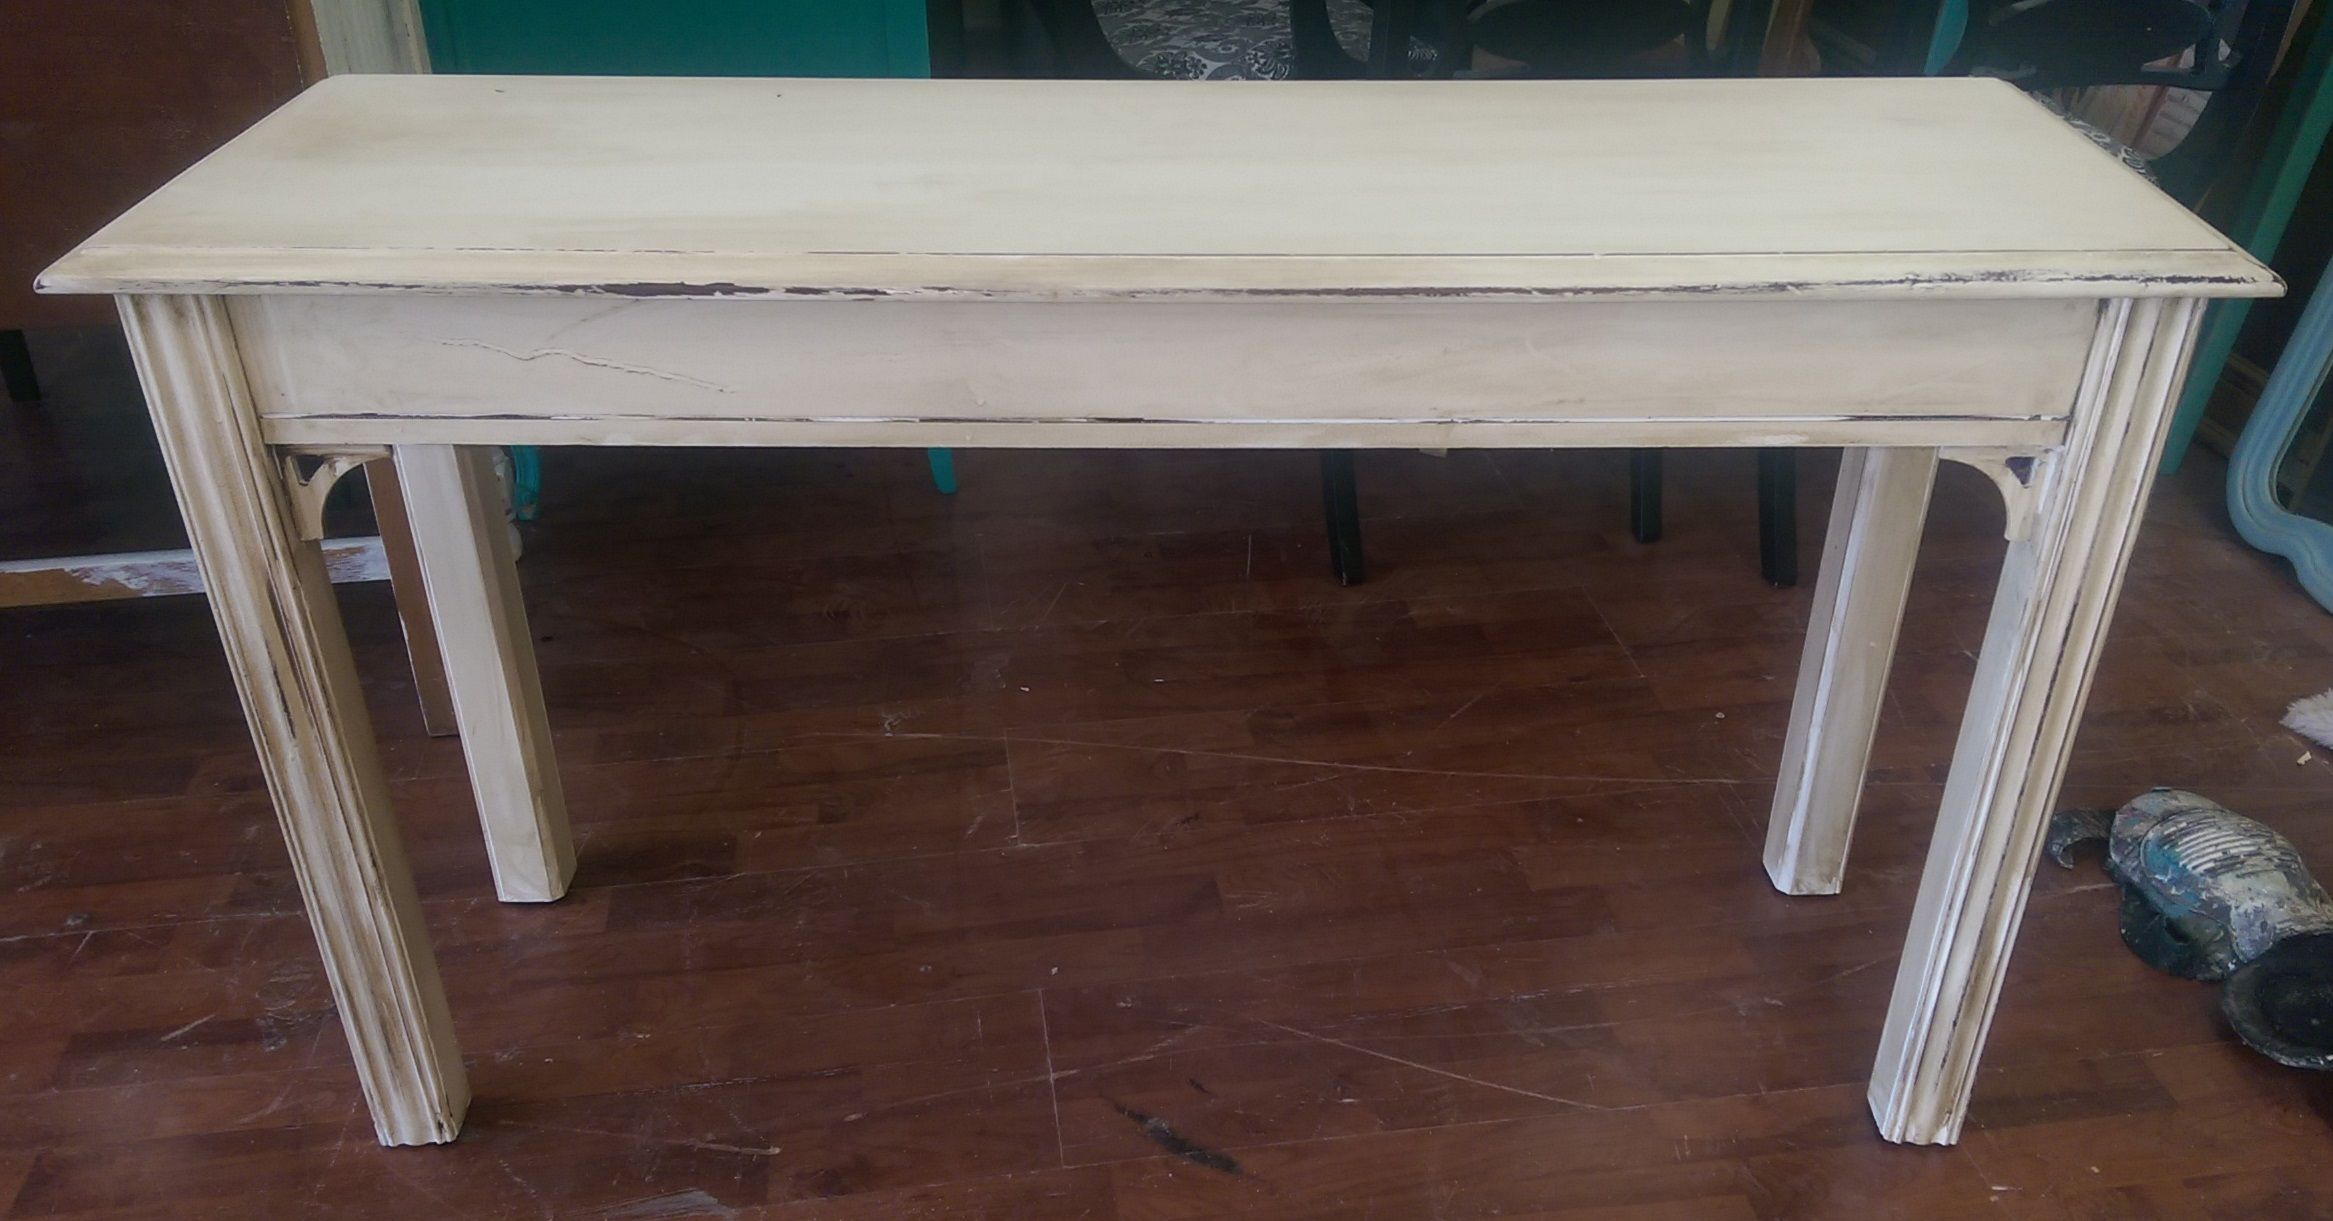 Attirant Shabby Chic Texas | Painted Vintage Furniture In Texas. Entry TablesSofa  TablesAccent ...